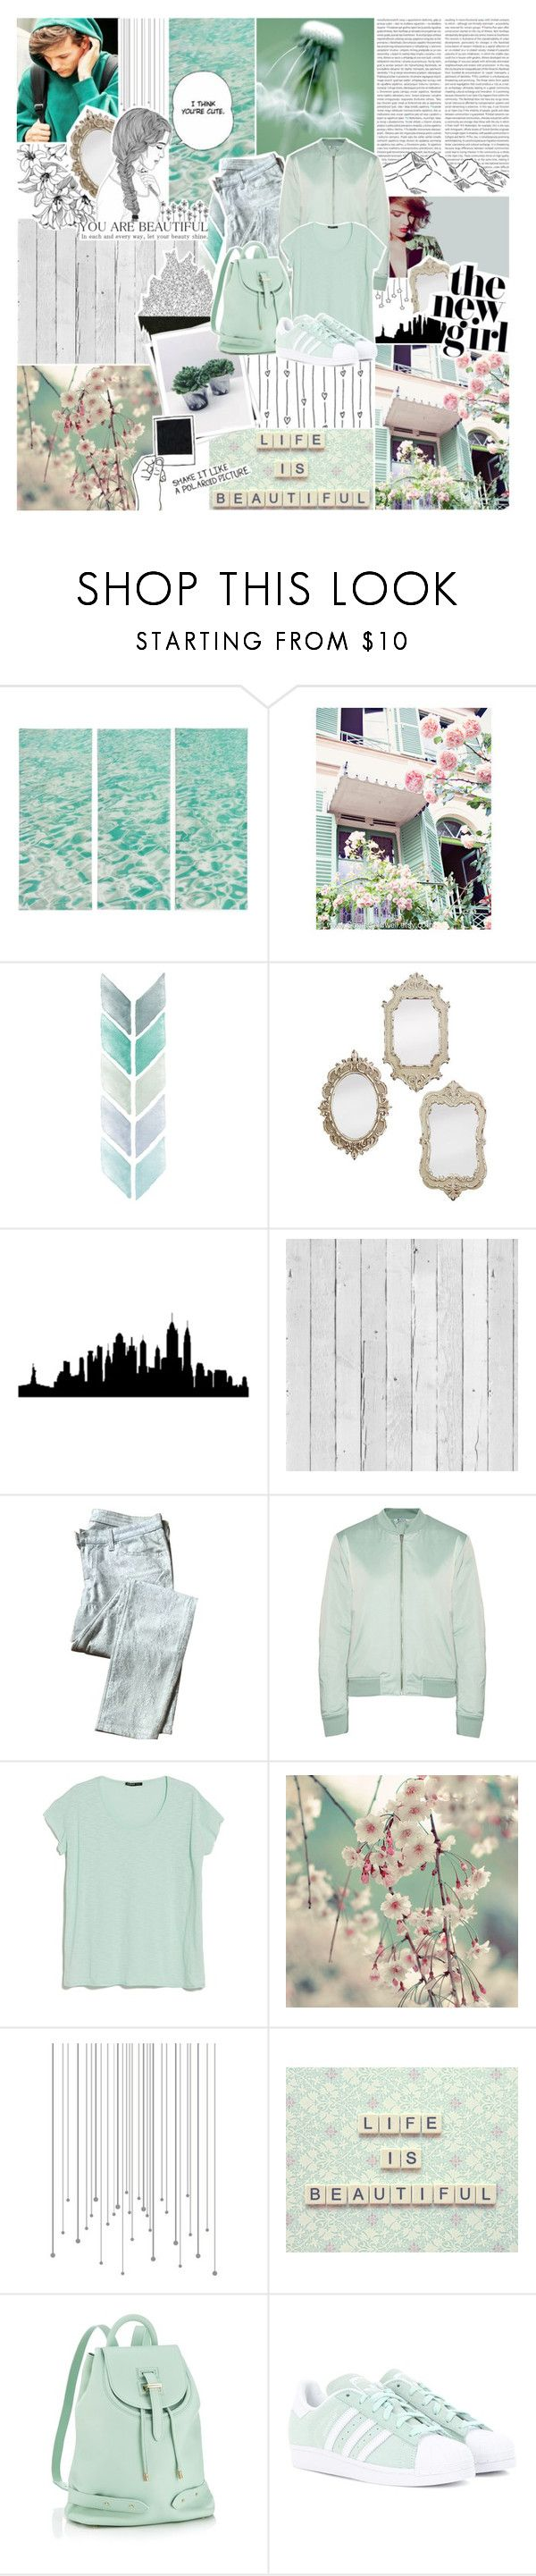 """""""Life Is Beautiful"""" by xcuteniallx ❤ liked on Polyvore featuring WALL, Piet Hein Eek, Oris, 7 For All Mankind, T By Alexander Wang, MANGO, Shabby Chic, GALA, Meli Melo and adidas Originals"""